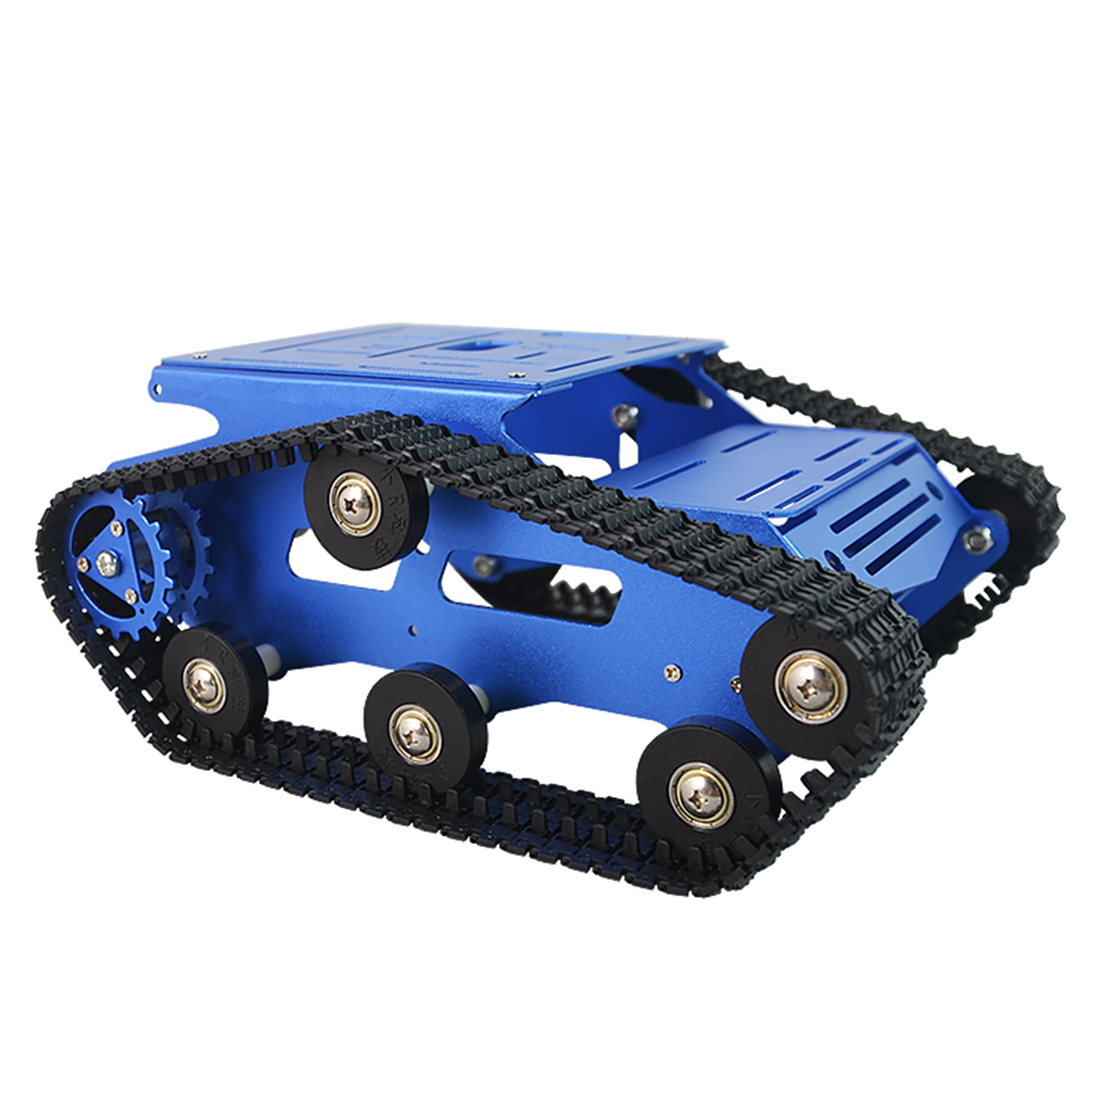 DIY Smart Robot Tank Crawler Chassis Car Frame Kit For Children Developmental Early Education Toys - Blue Black Red Golden Green